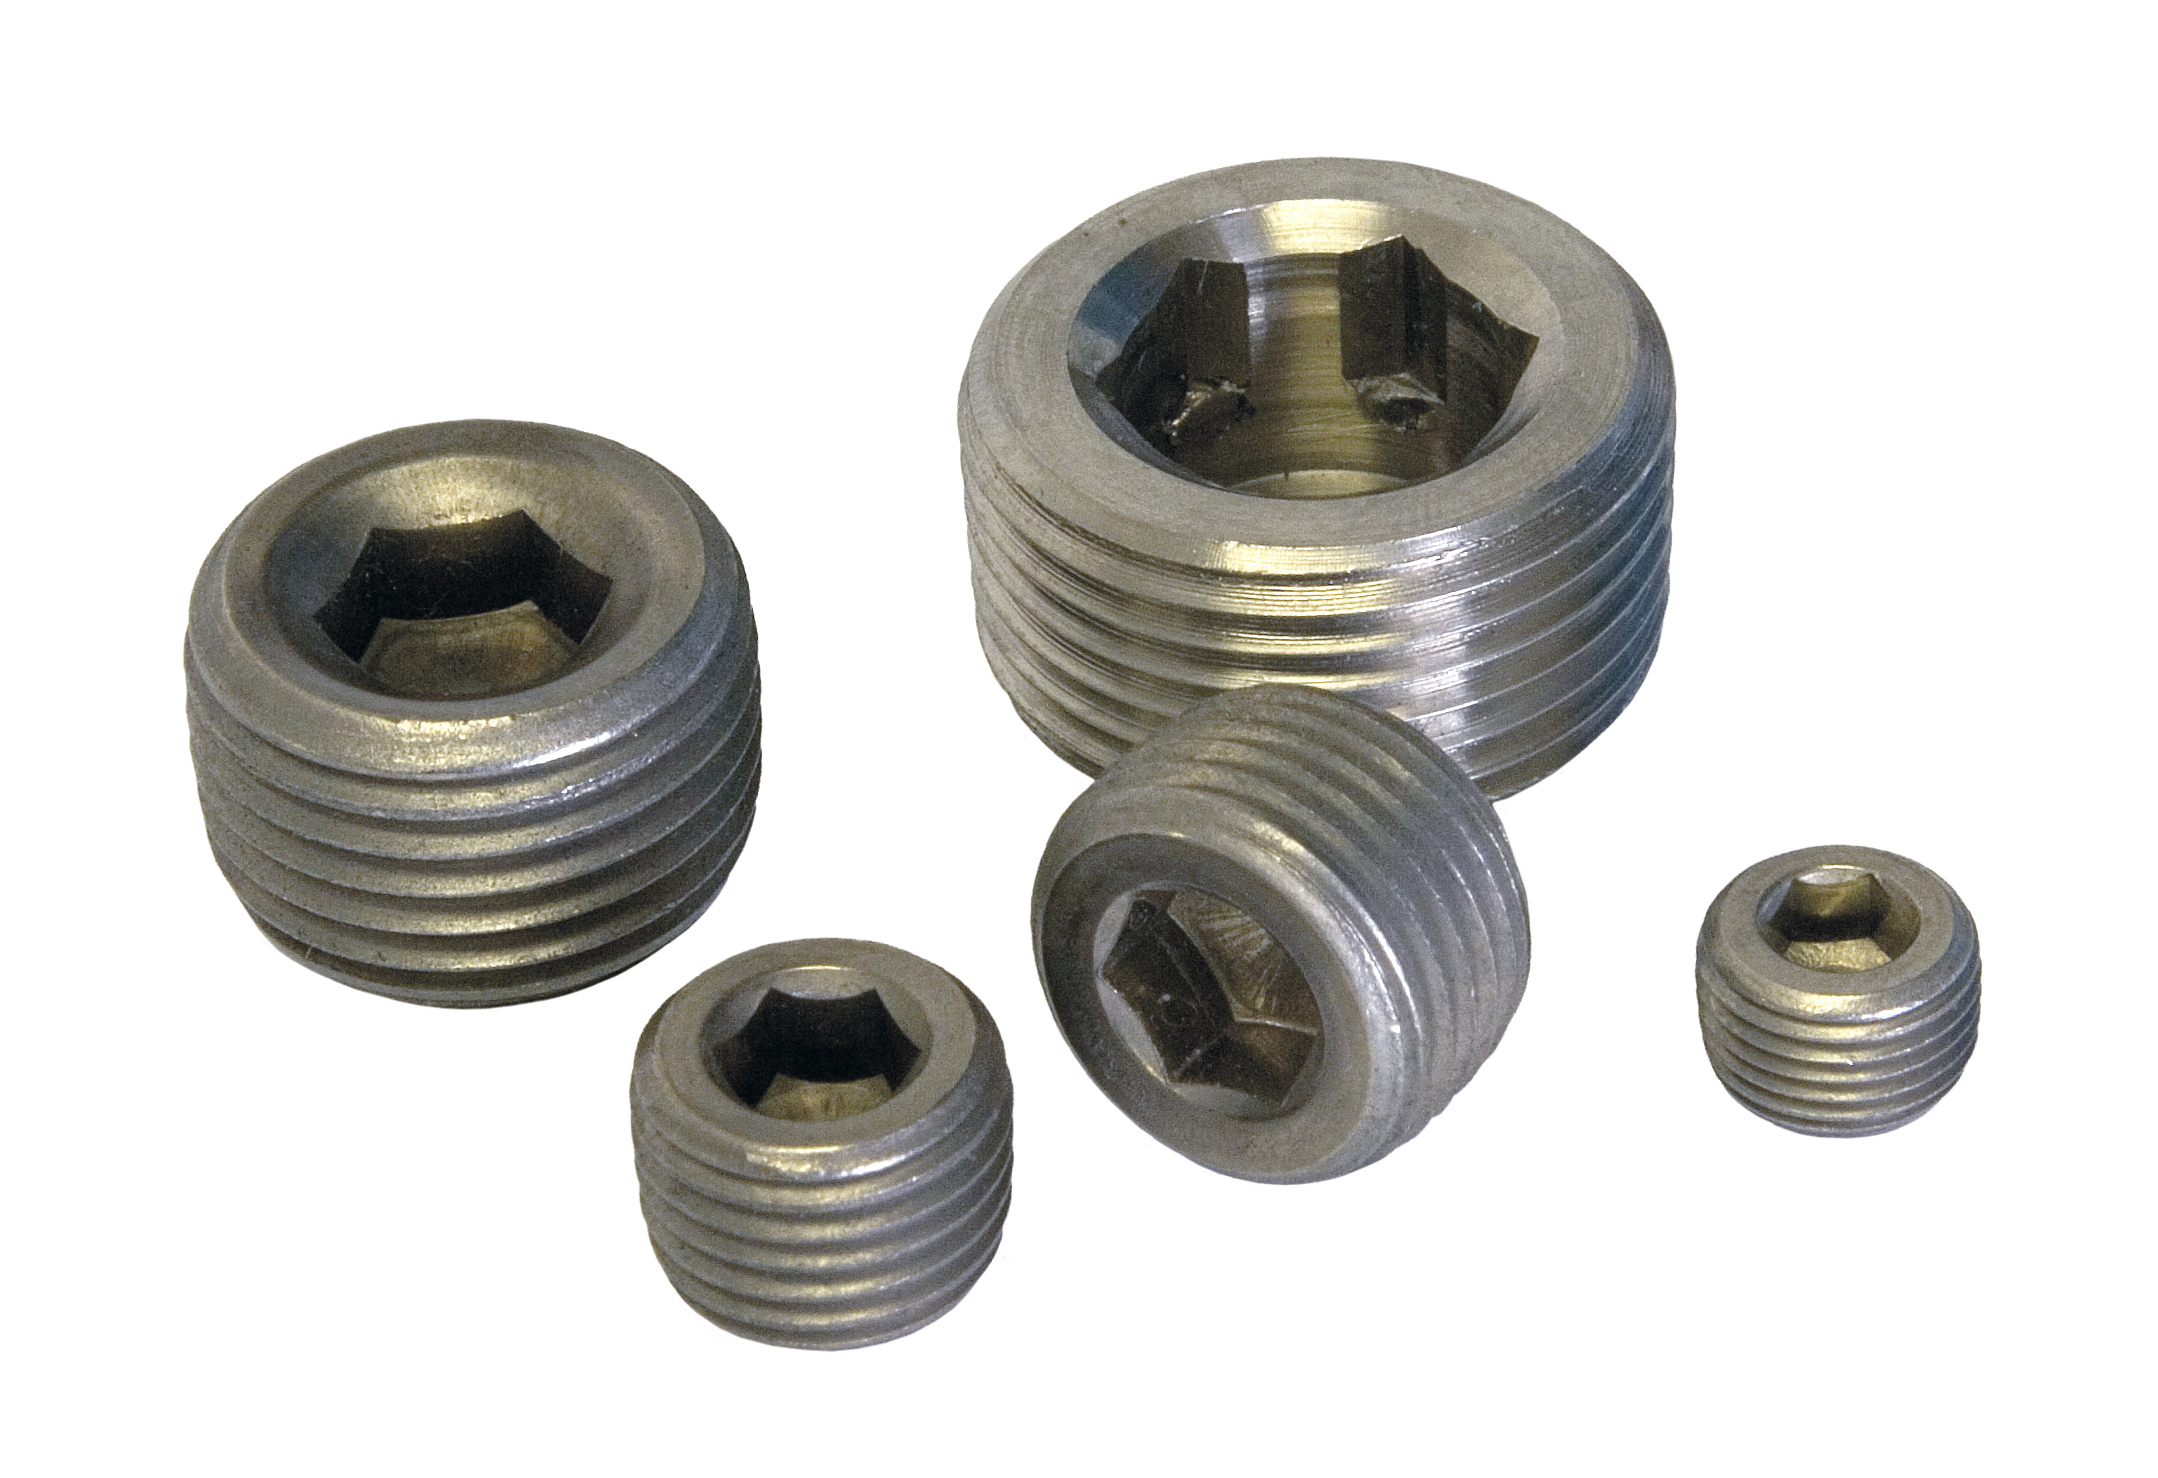 Allen pipe plugs stainless